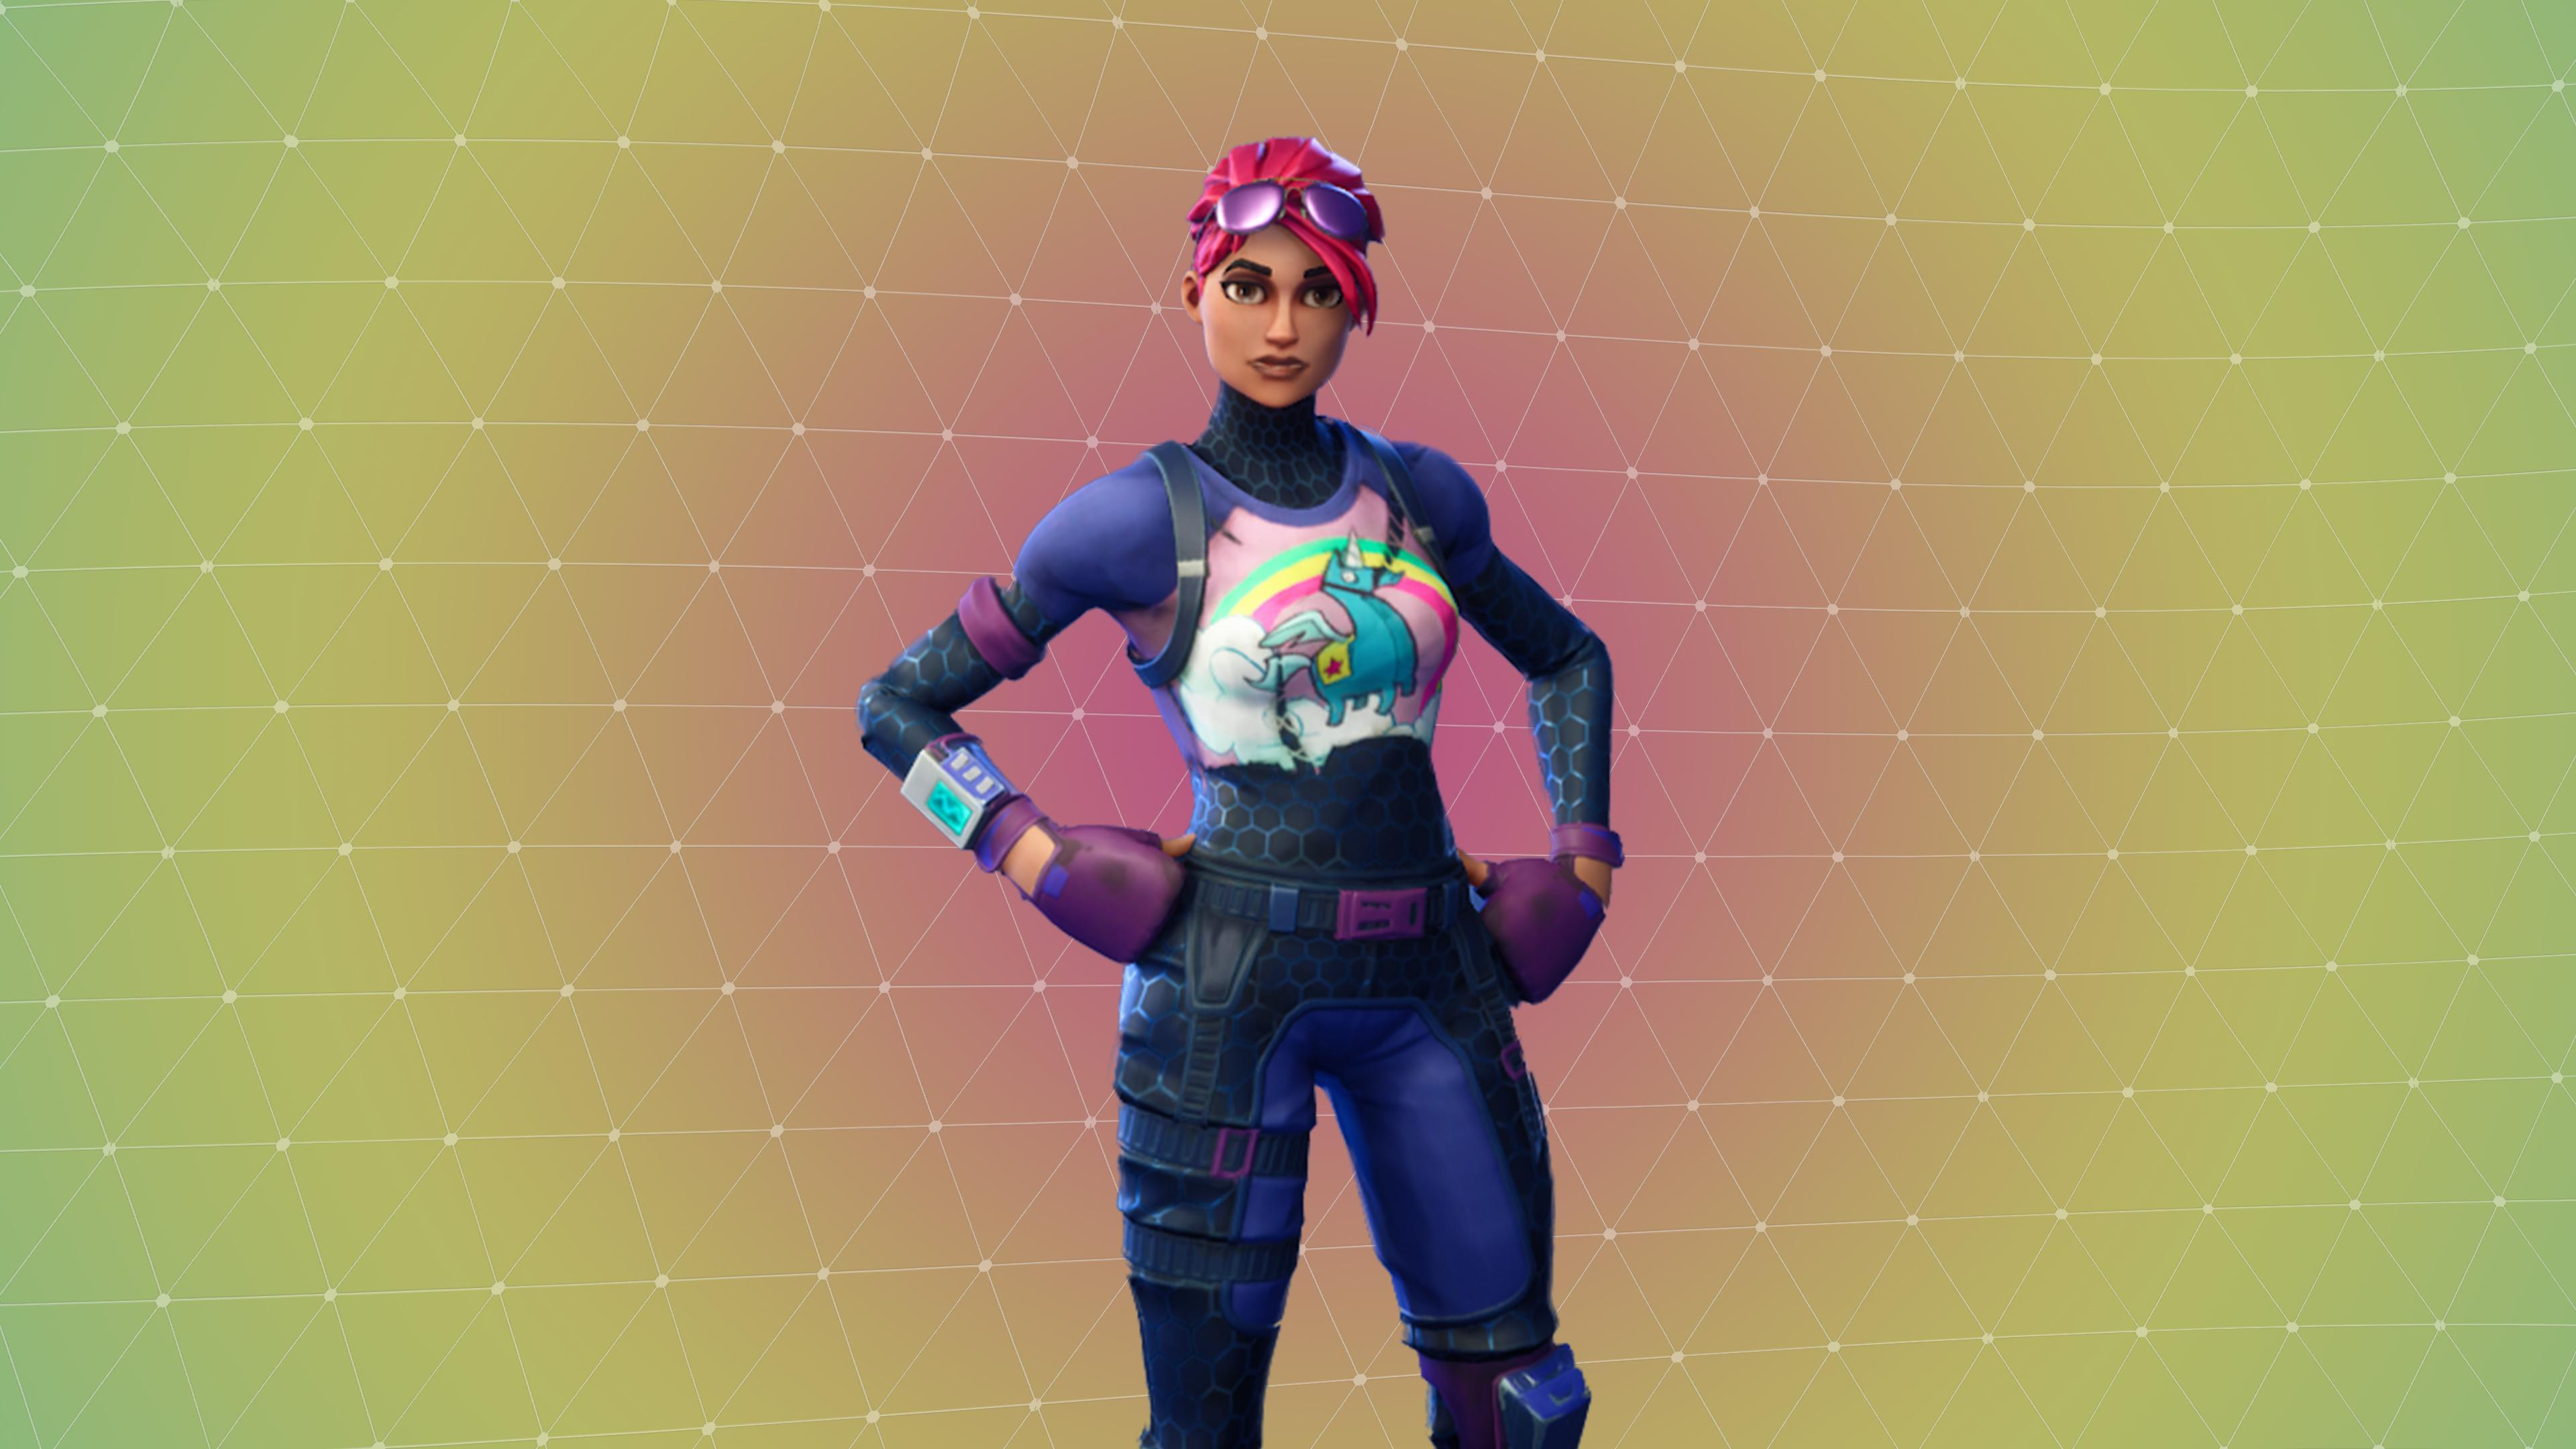 The Bright Bomber Fortnite Wallpapers - Top Free The Bright Bomber ...